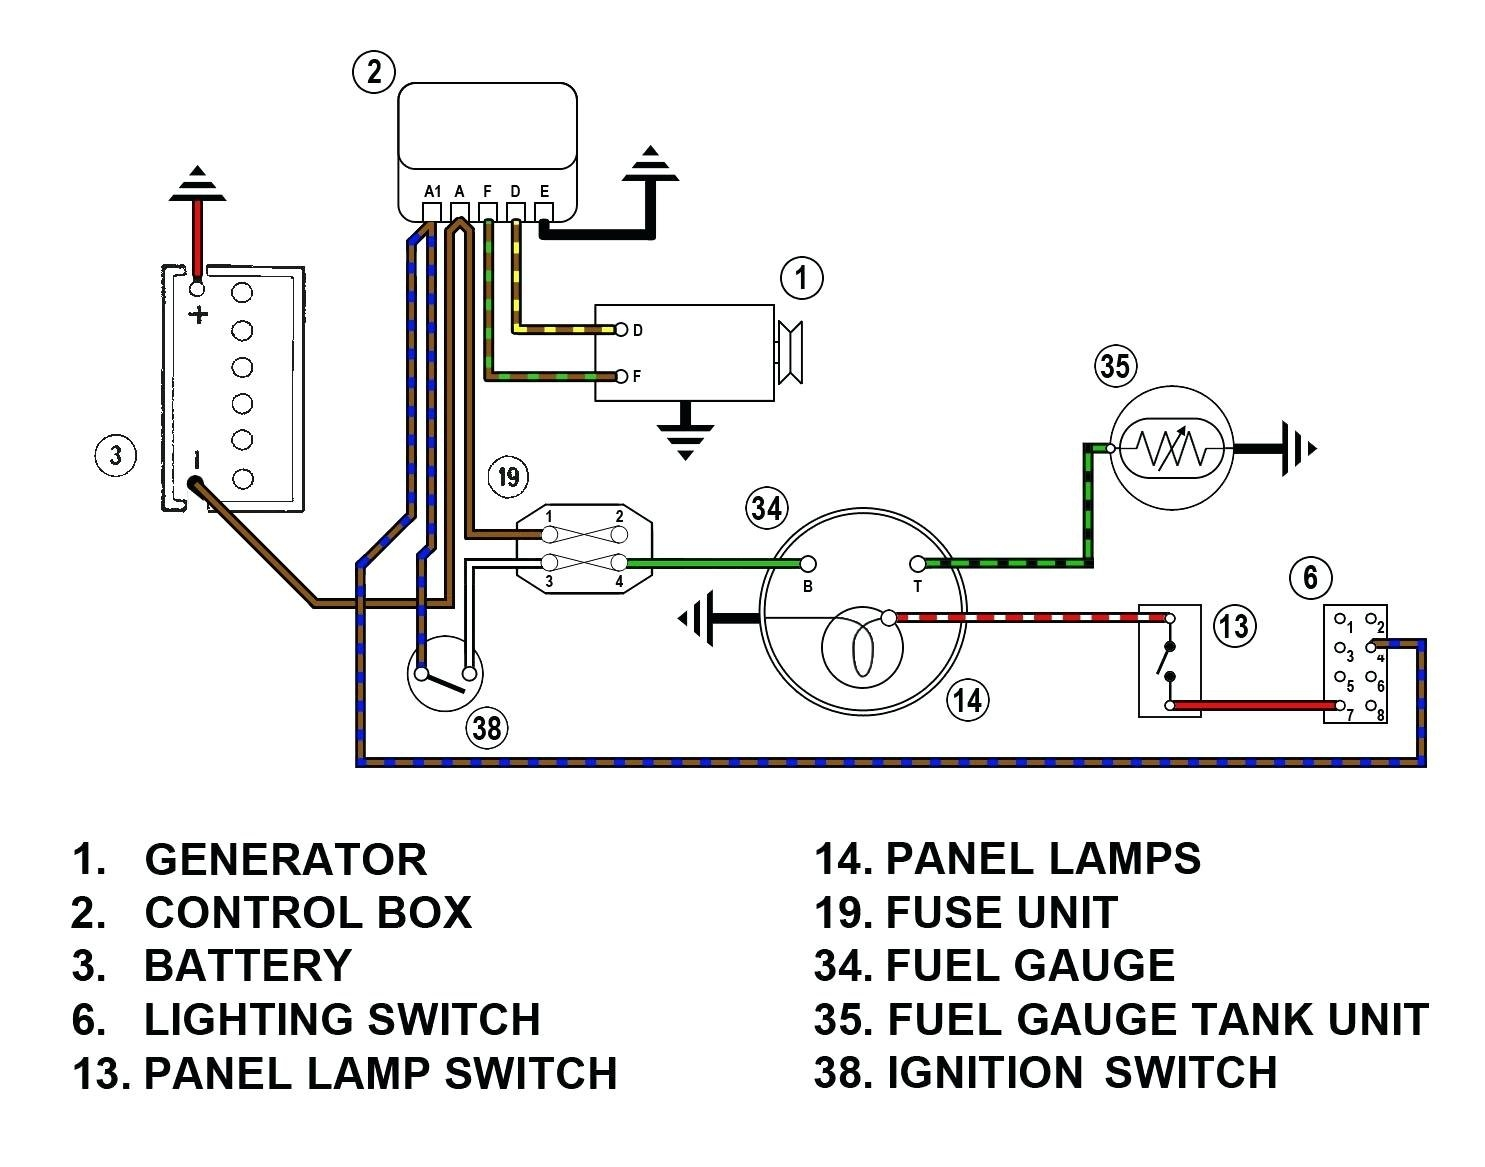 Electrical Panel Wiring Diagram Software Free Schematic Builder Circuit Gorgeous Fuel